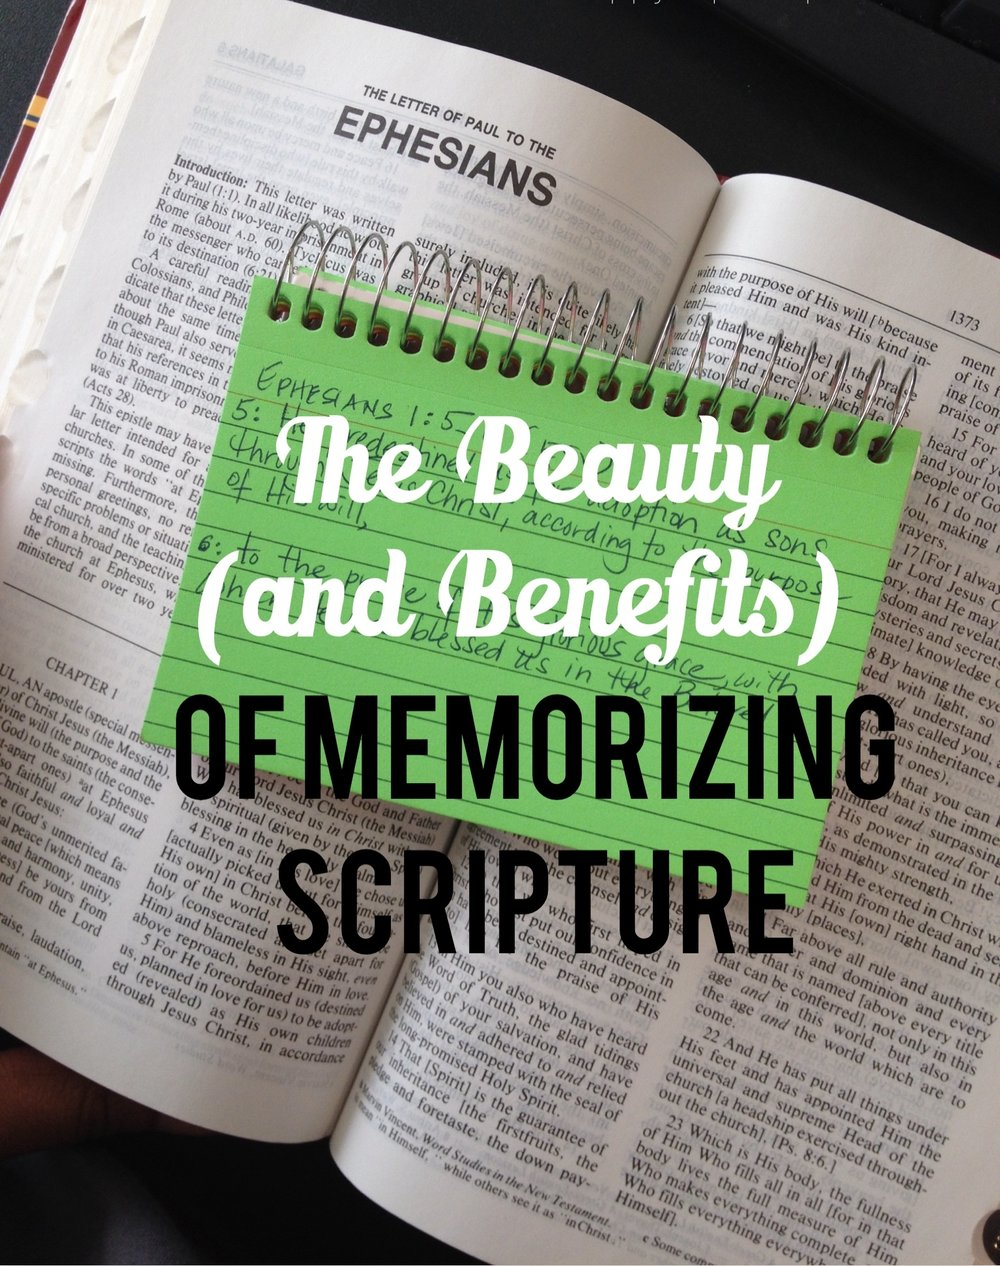 The Beauty and Benefits of Memorizing Scripture